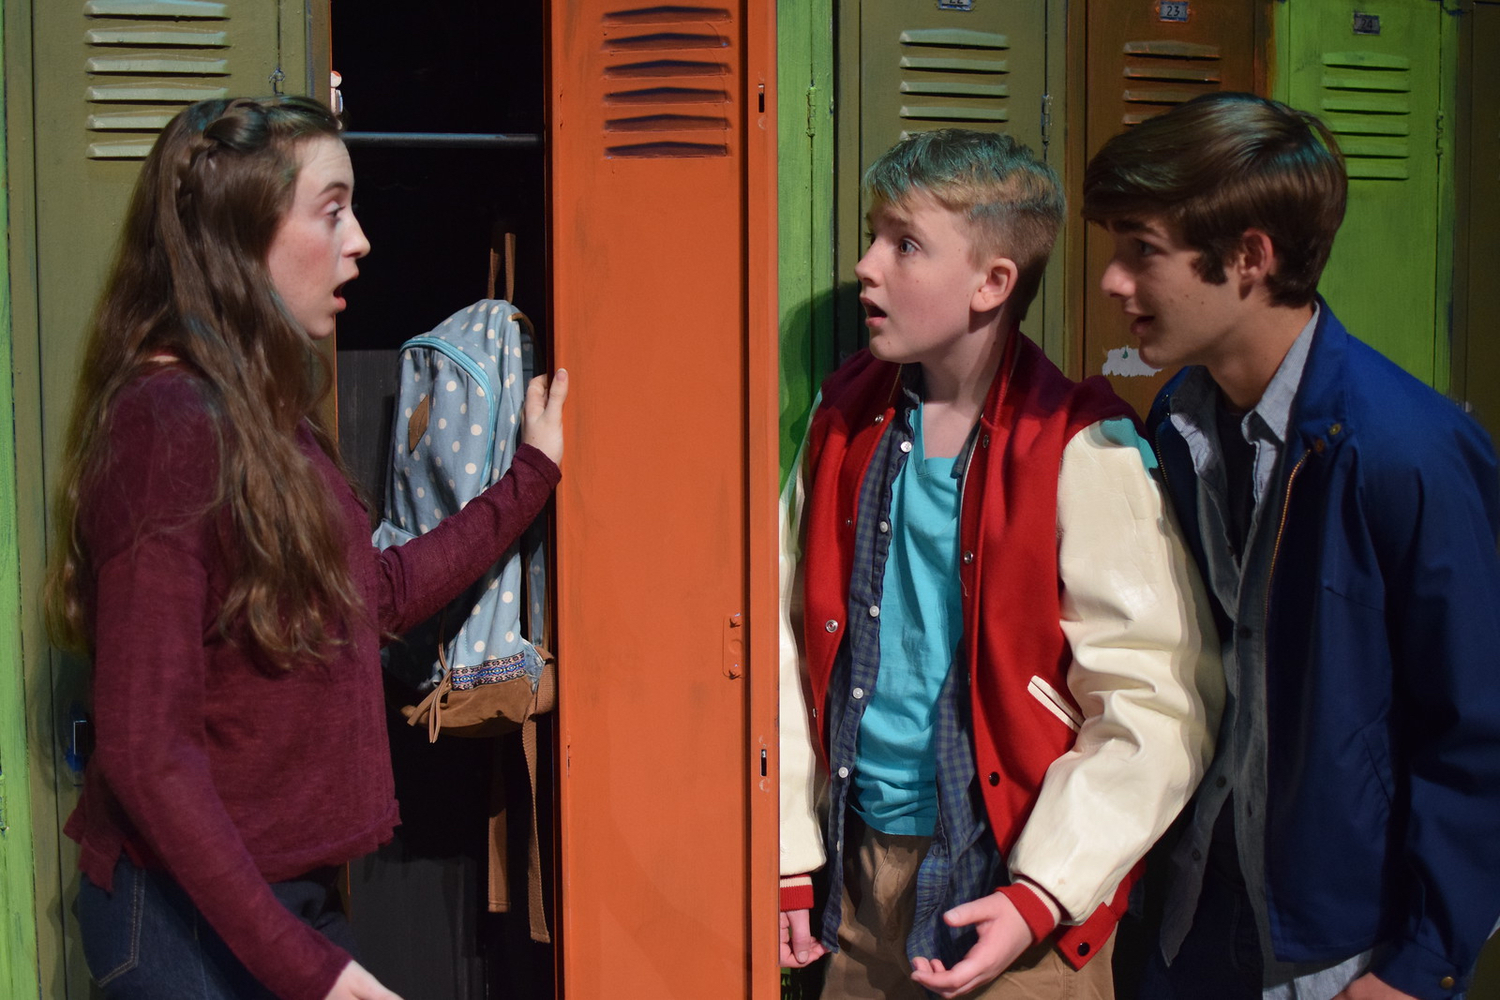 BWW Review: GOOSEBUMPS: THE PHANTOM OF THE AUDITORIUM at The Rose Theater May Give You Shivers!